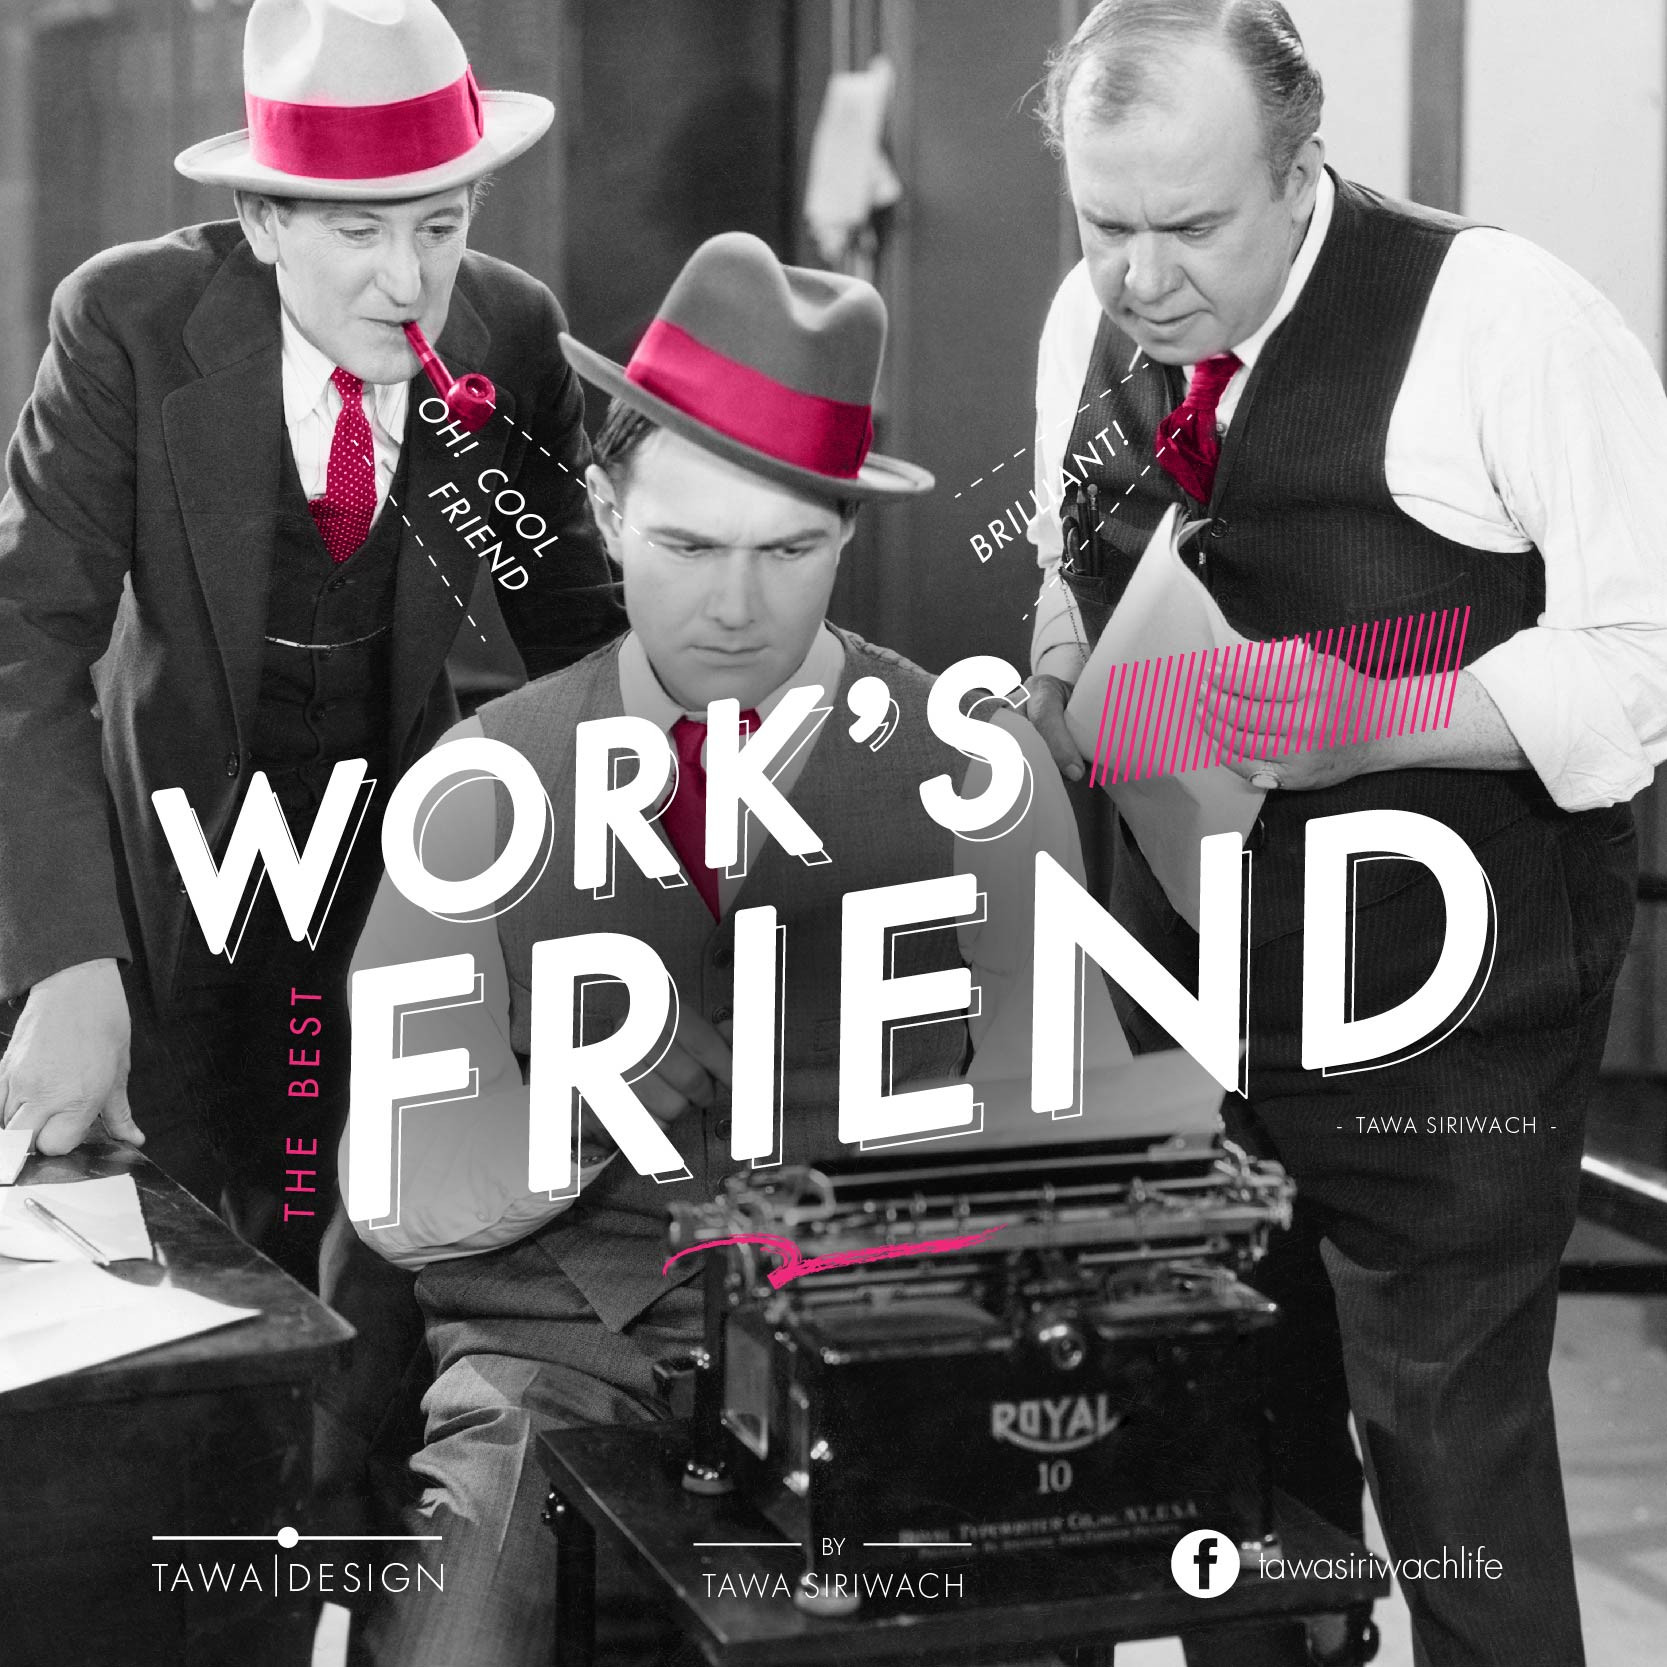 Work is the best friend. When you work as much as you can,  you will understand and have fun with it more. - Tawa Siriwach -